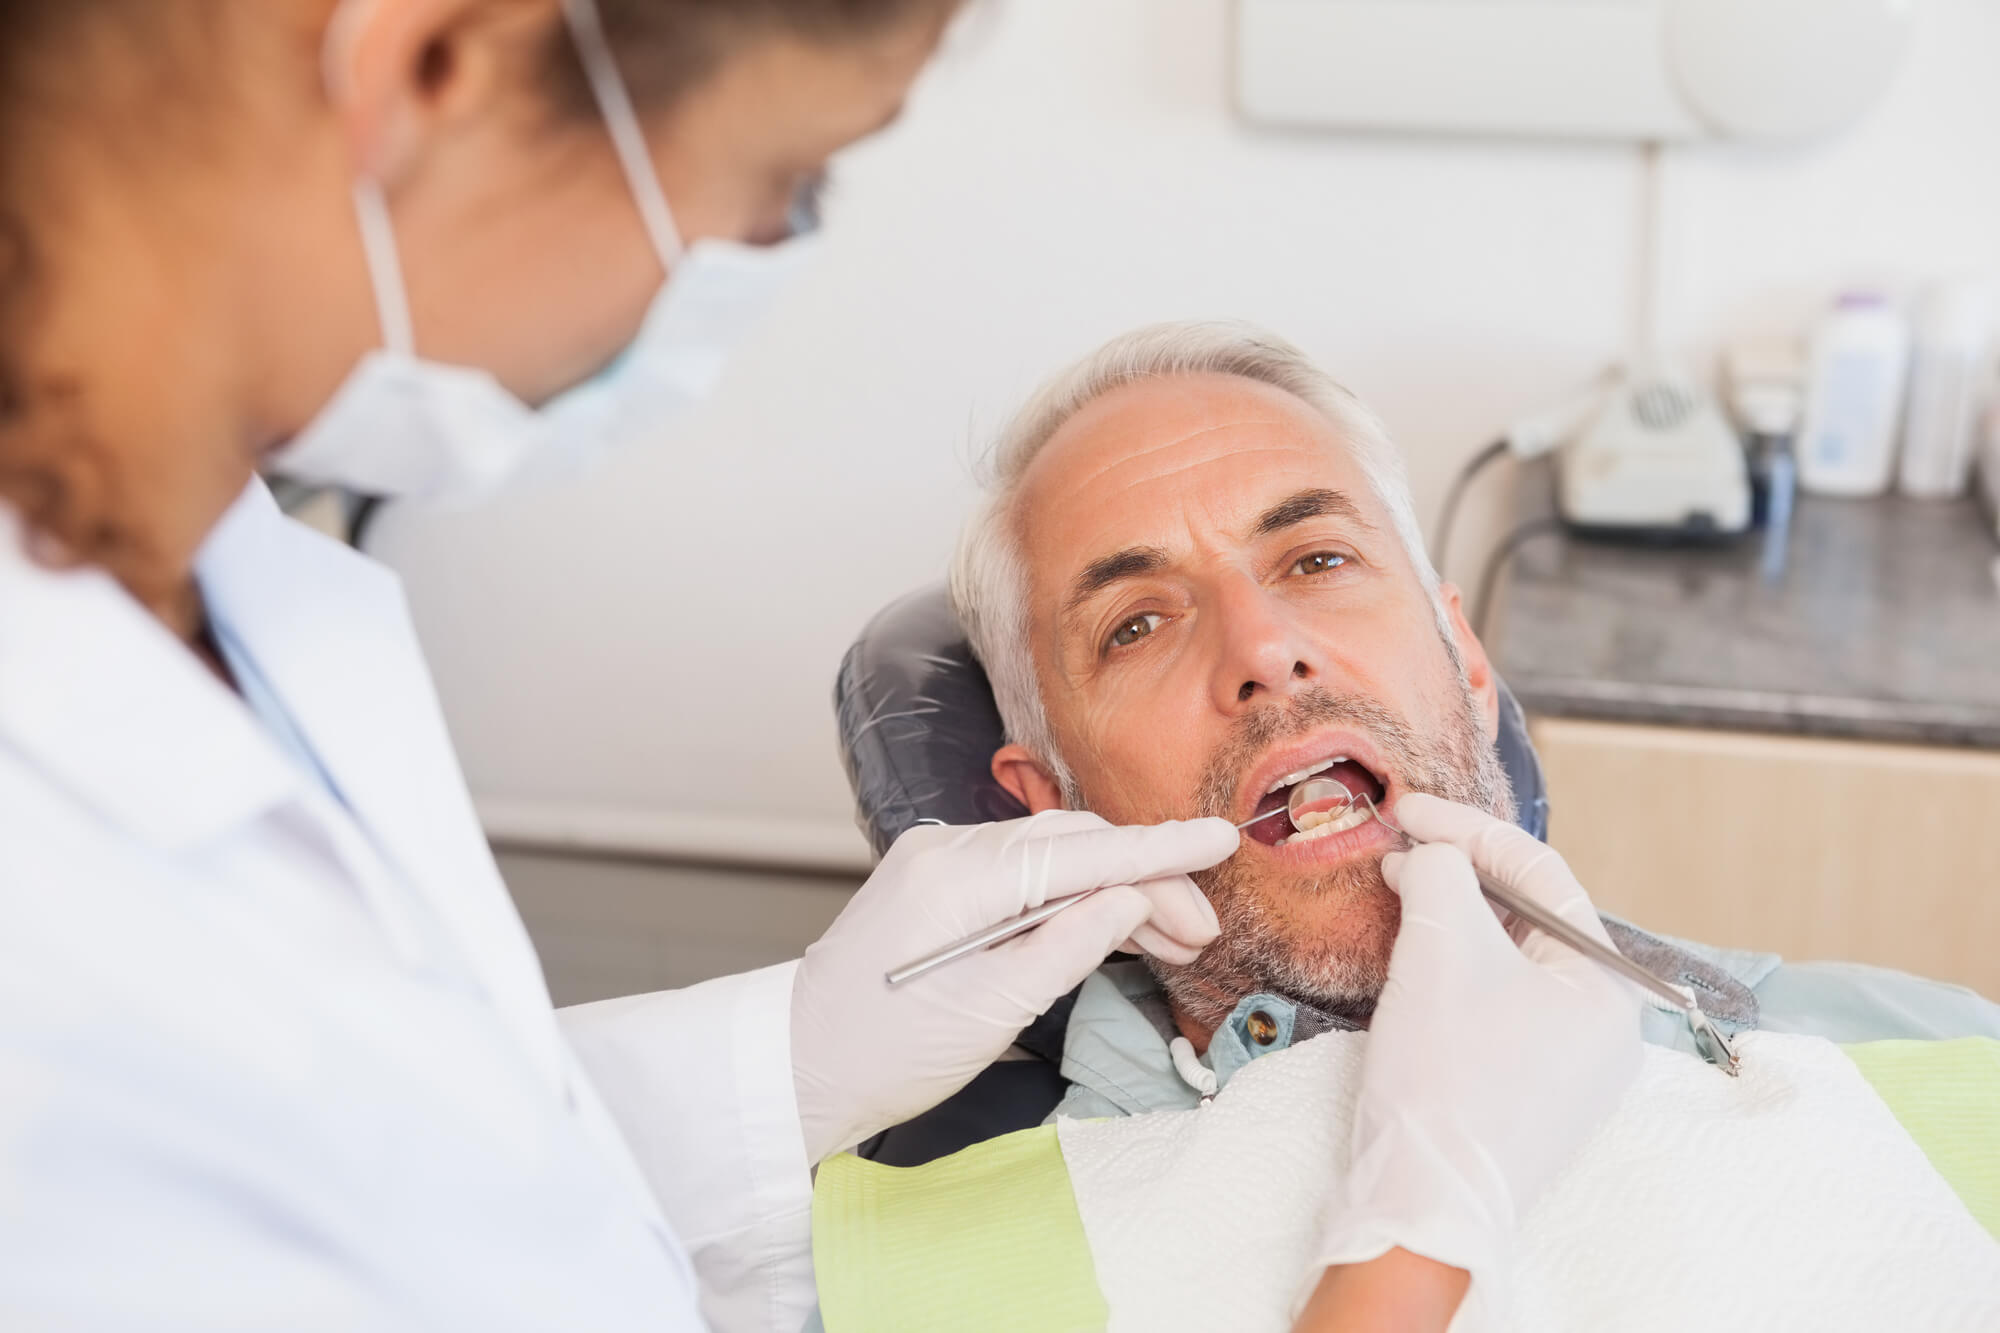 where is the best place to get periodontics miami?